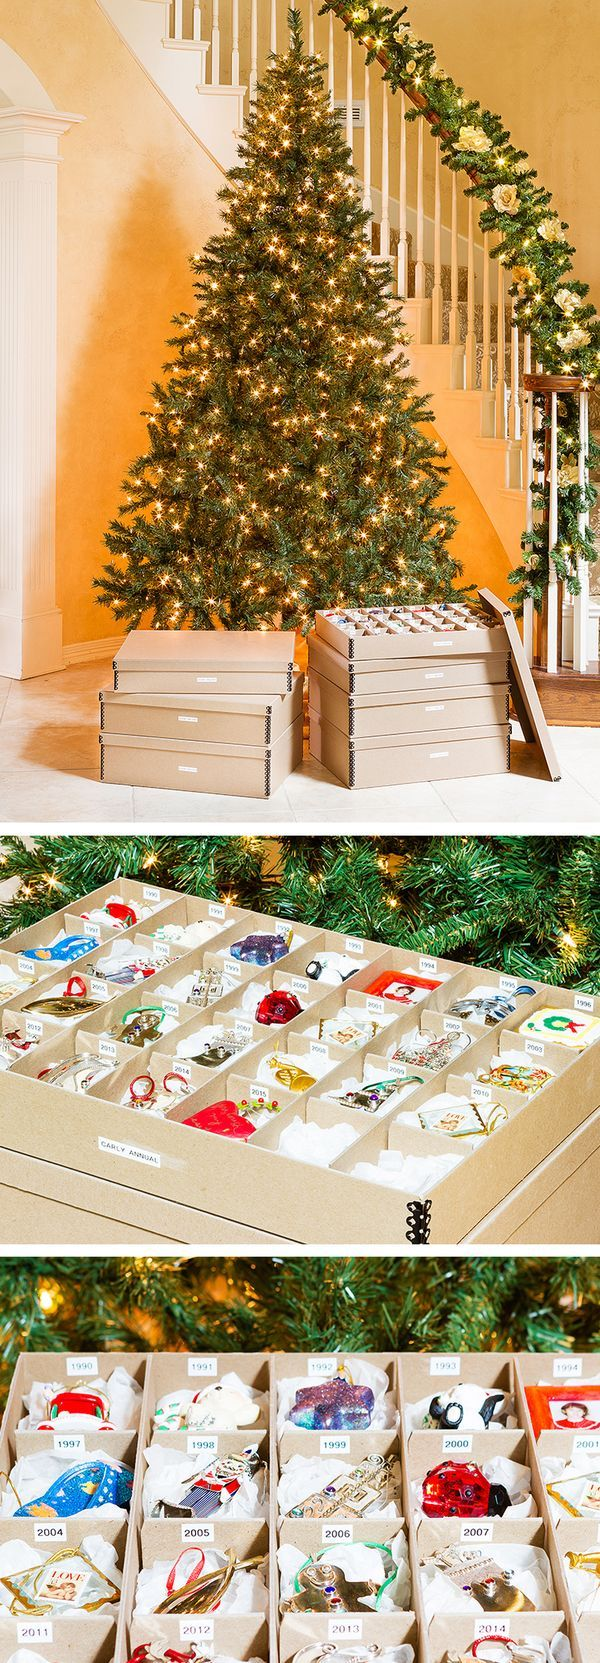 How to pack christmas ornaments for moving - A Sweet Ornament Tradition Receives A Storage Upgrade